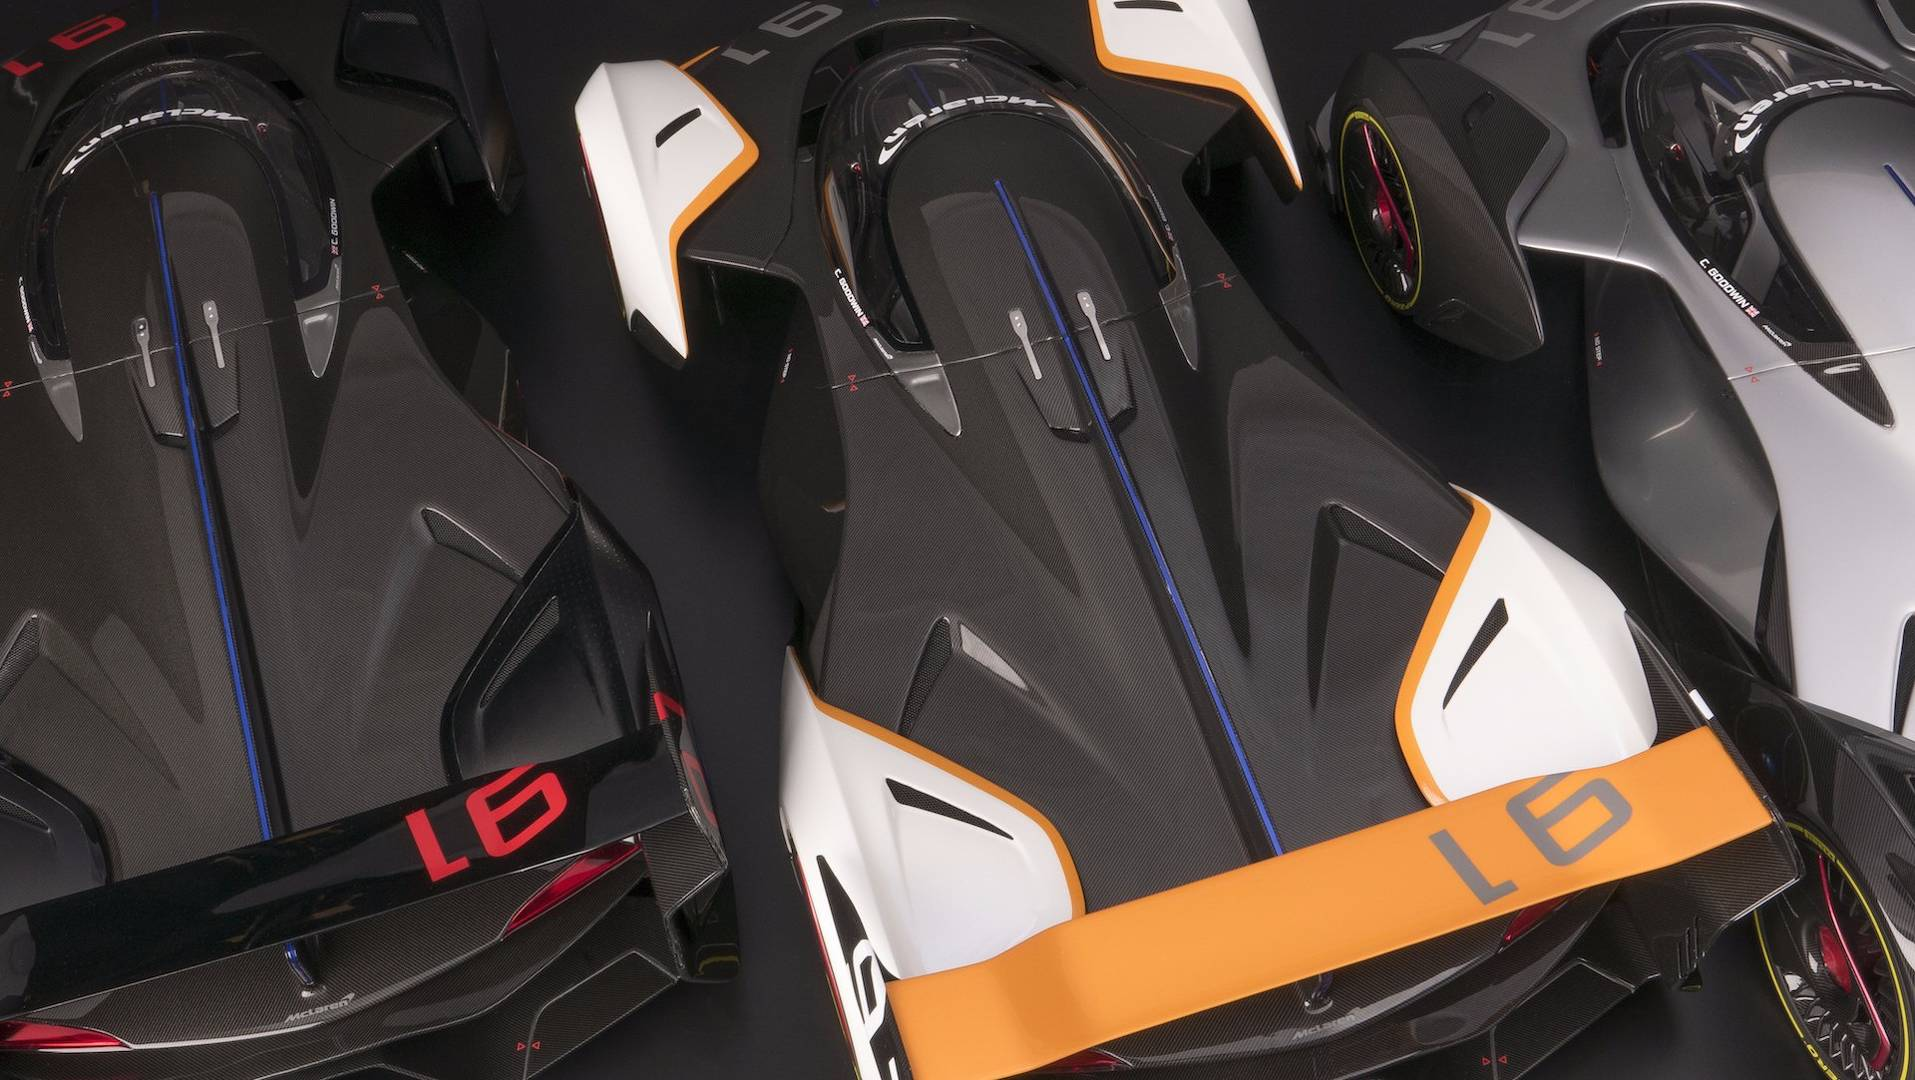 mclaren-ultimate-vision-gt-scale-model (12)